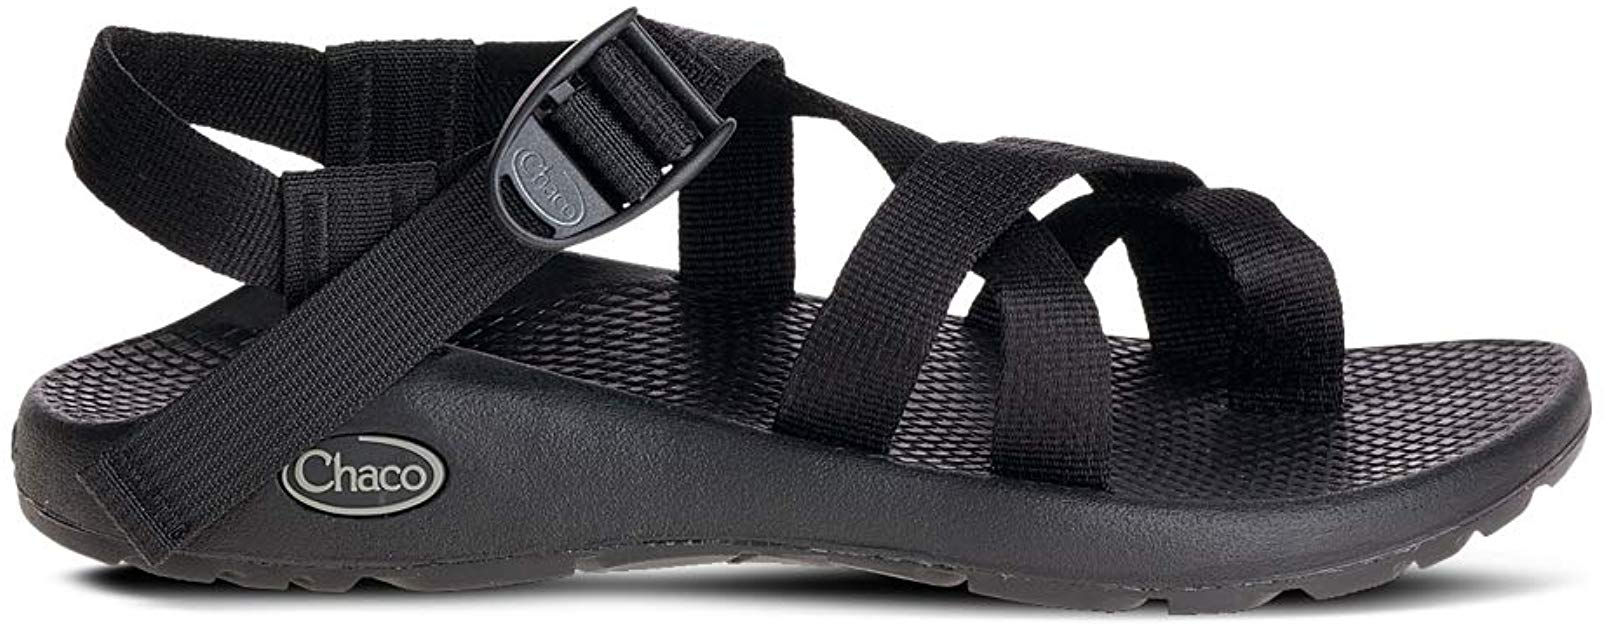 best-shoes-for-narrow-feet